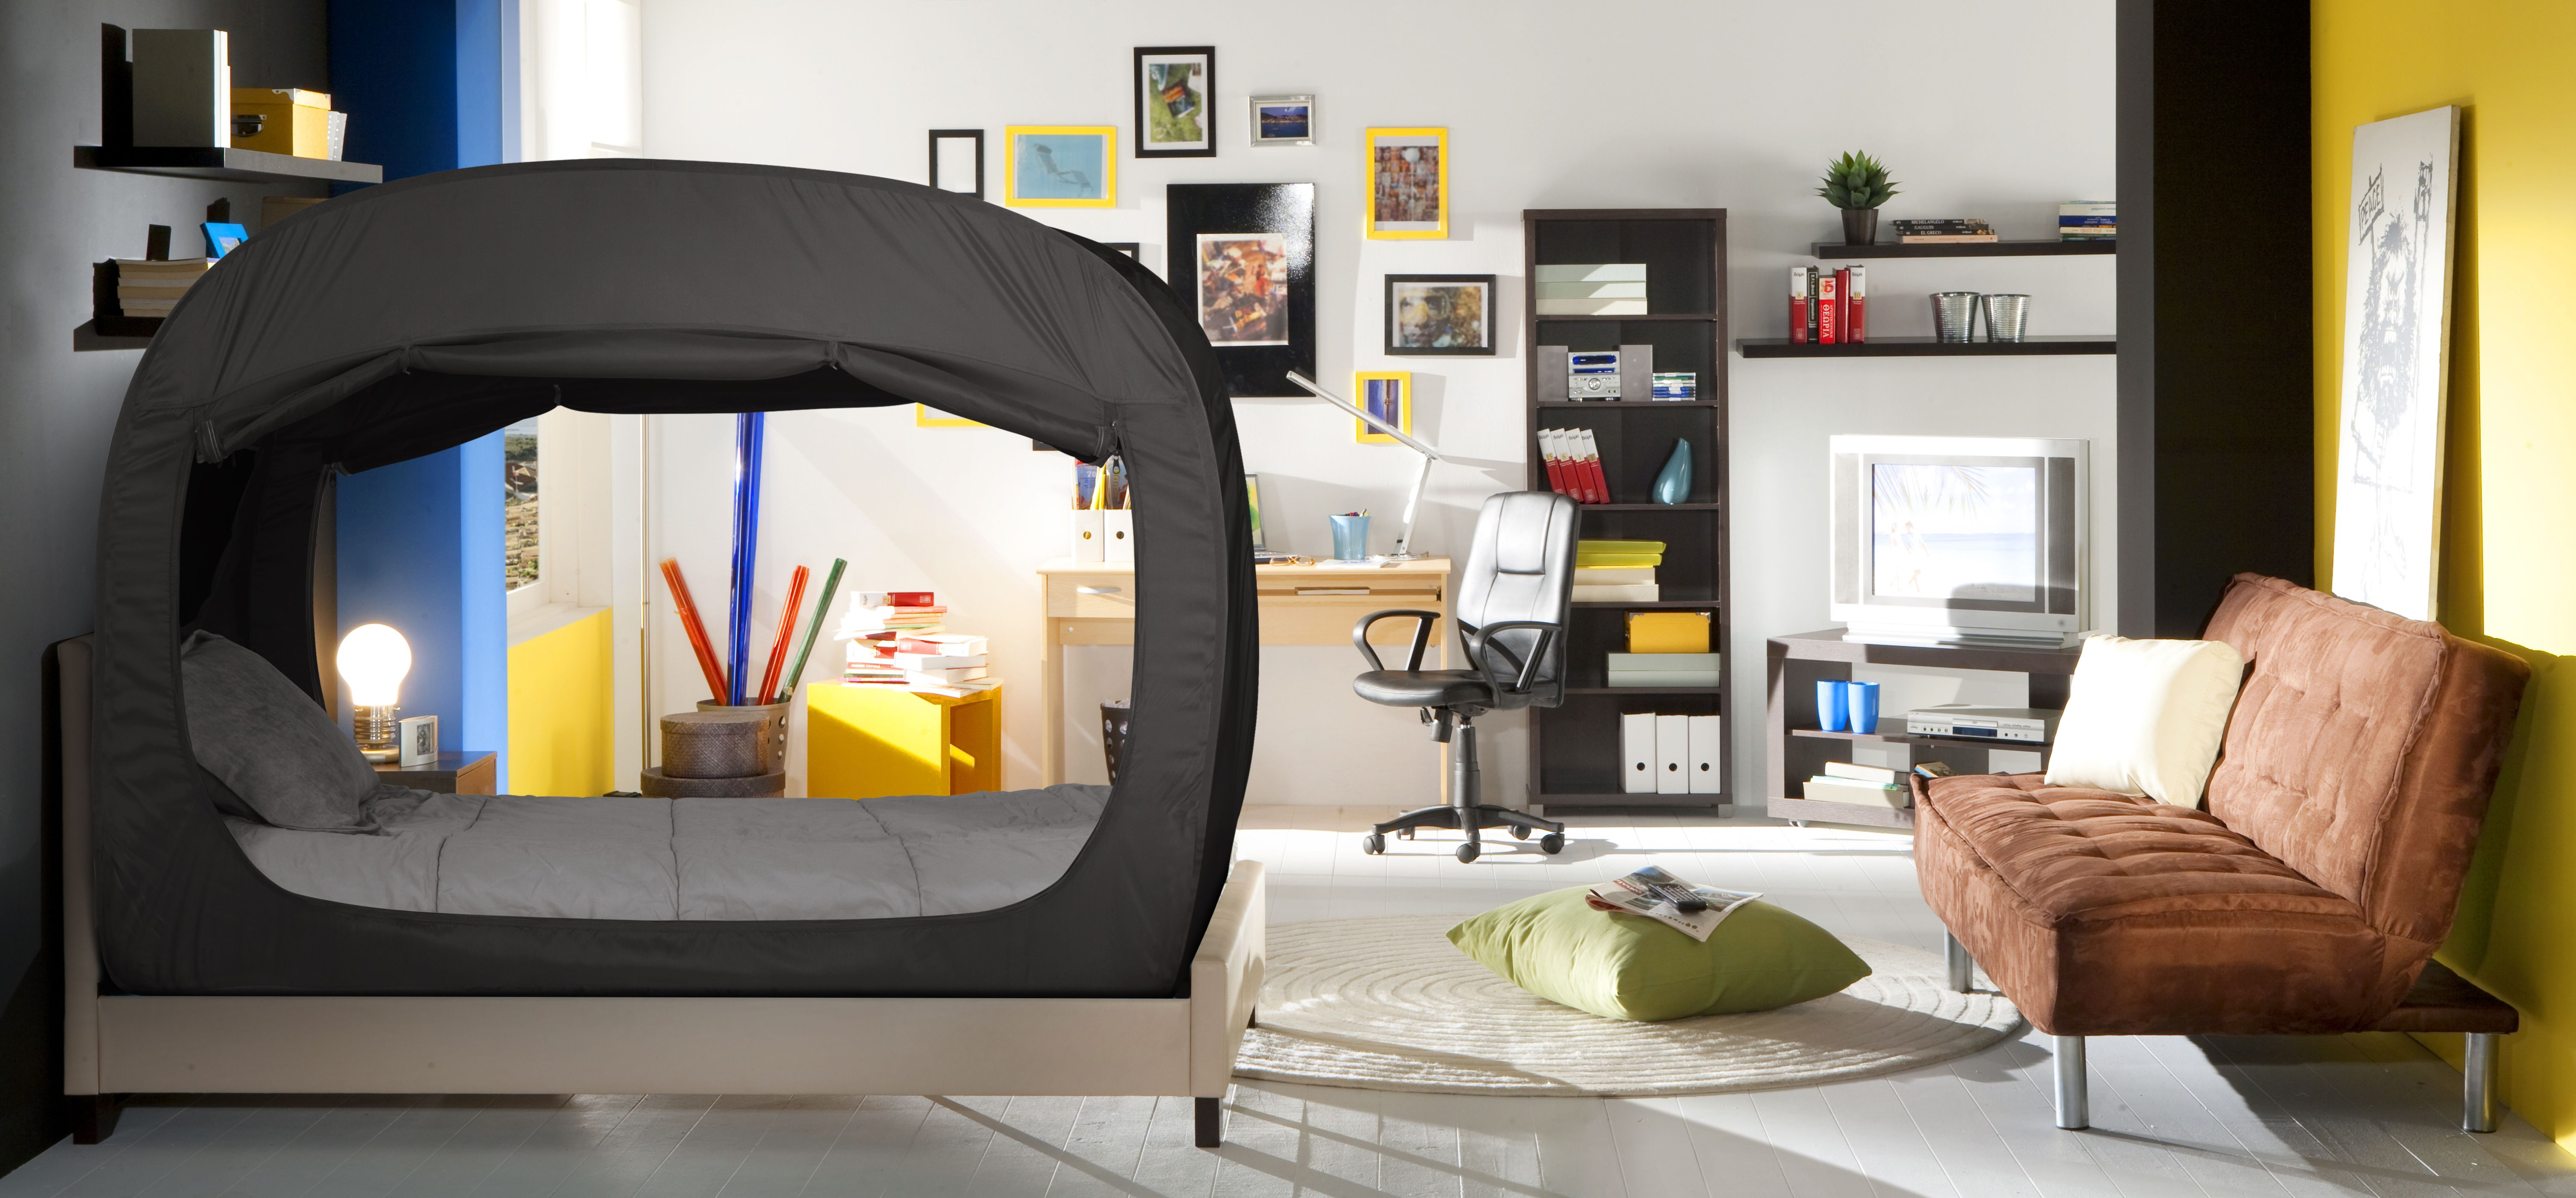 Privacy Pop Lifestyle! Bed tent, Bed tent twin, Tent